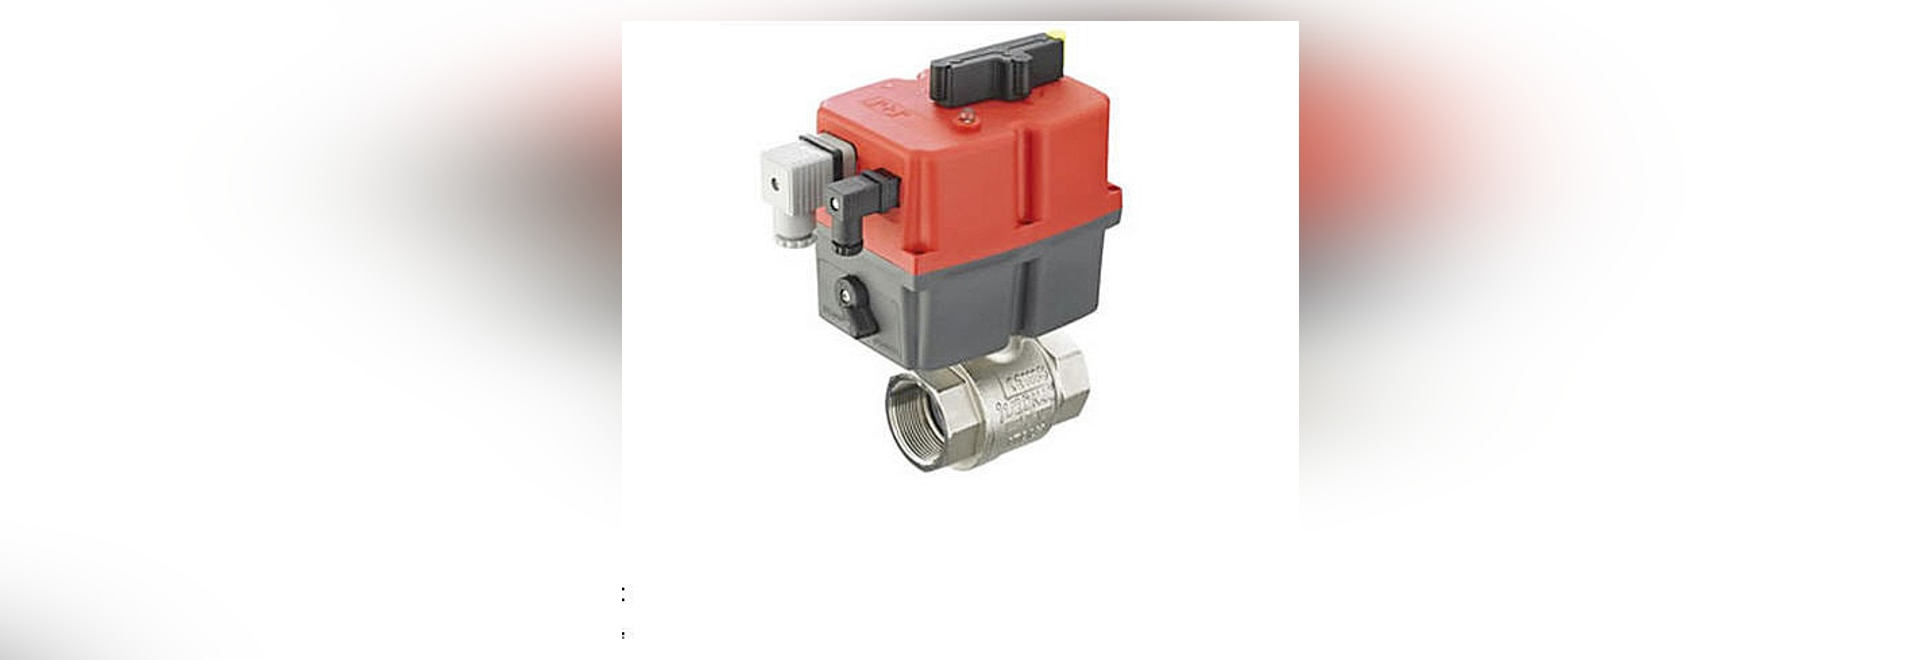 Actuated WRAS Ball Valve Max +70C Brass 2 Way Type J3-1100